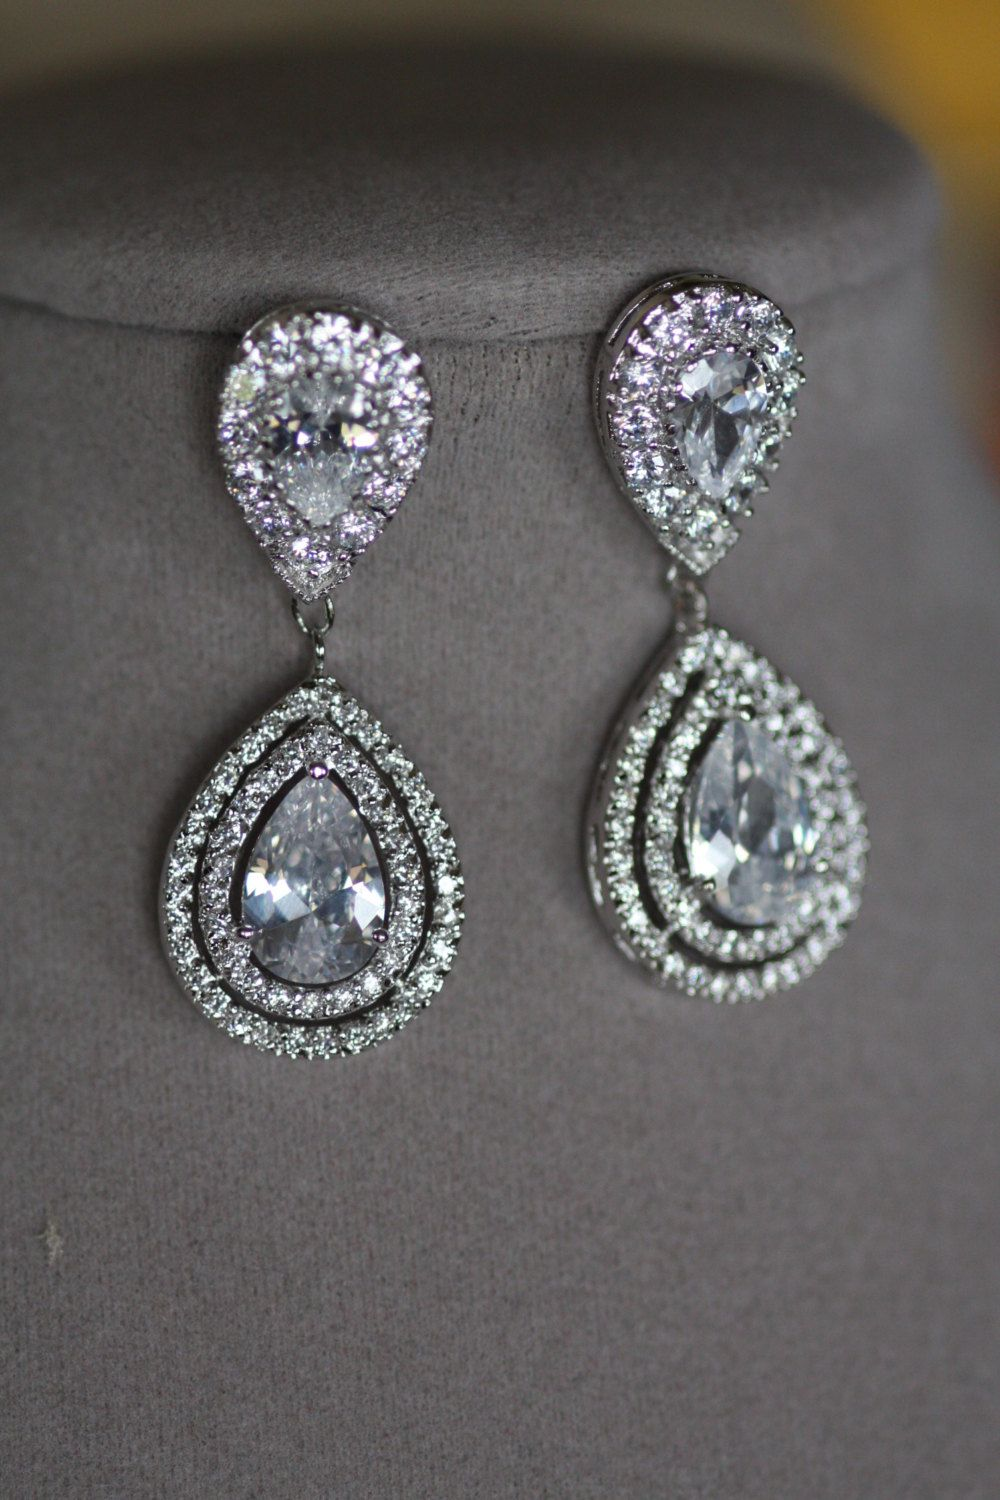 Bridal Crystal Drop Earrings Wedding Jewelry Swarovski Earrings – Clip on Earrings Chandelier